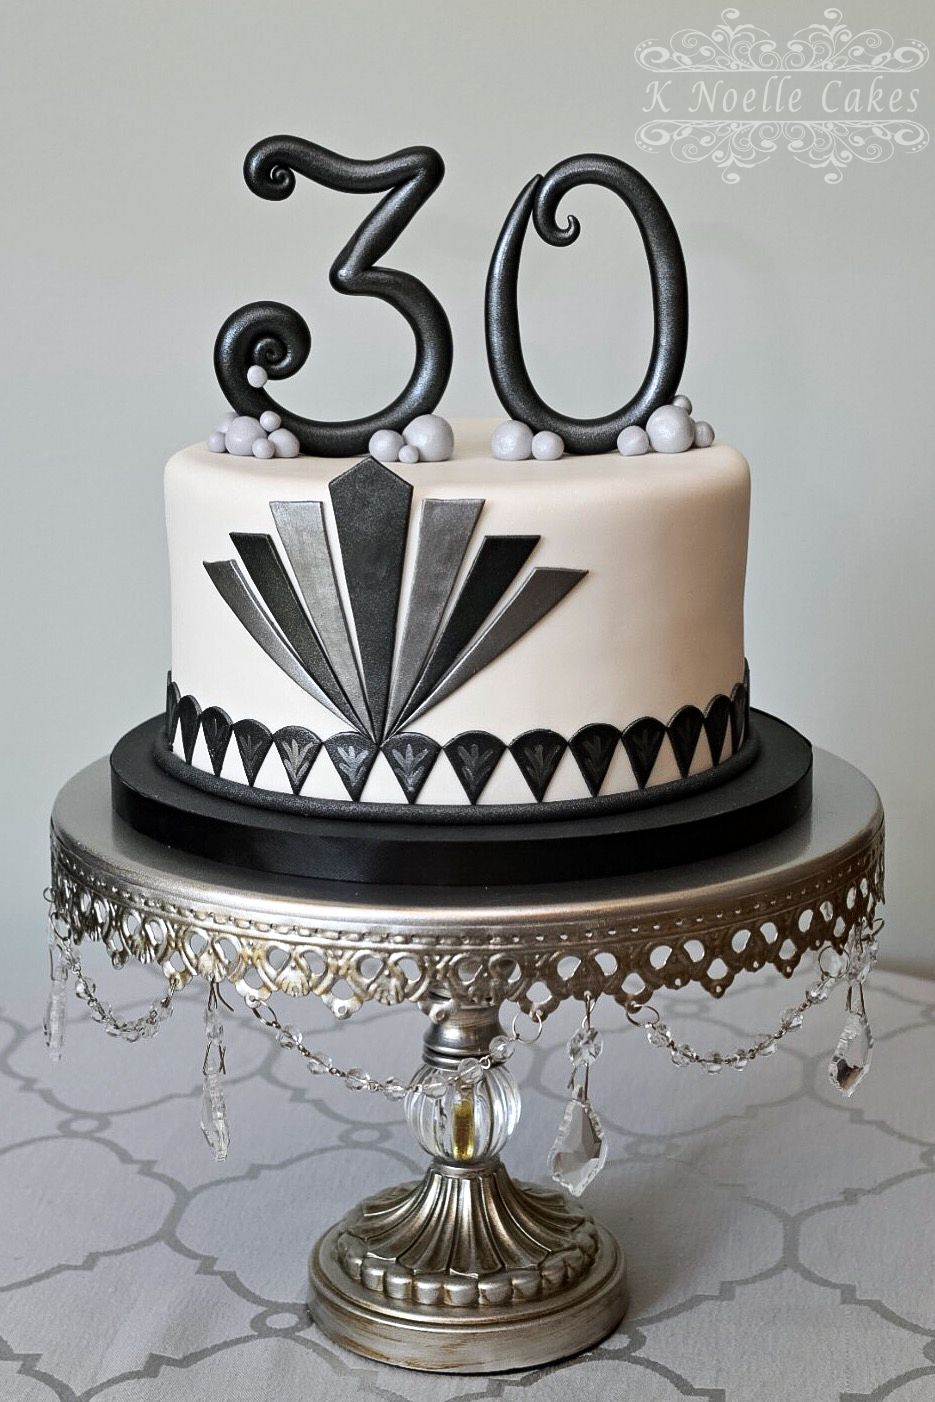 Art deco backdrop for photos wall decor party decoration 1920 s - The Great Gatsby Theme Cake By K Noelle Cakes Flapper Party1920s